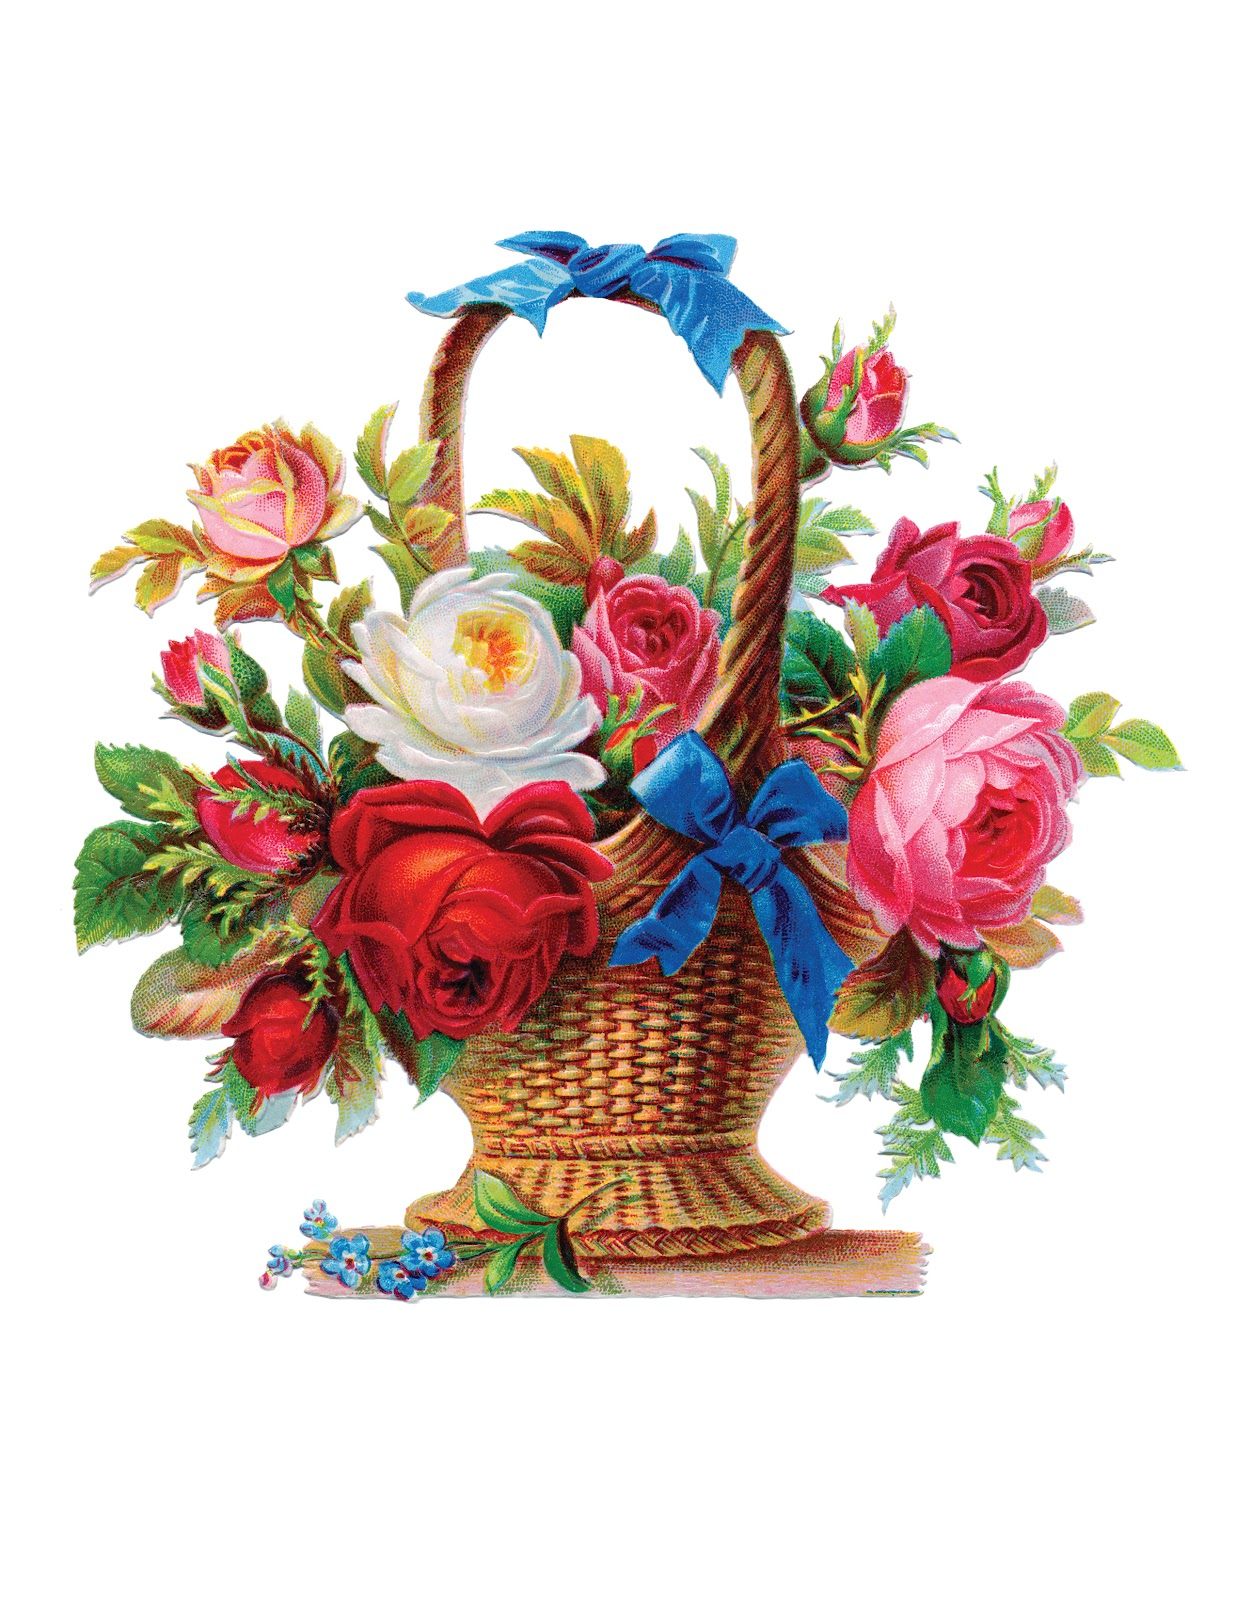 Images Of Flower Baskets : Take your picture free vintage image victorian basket